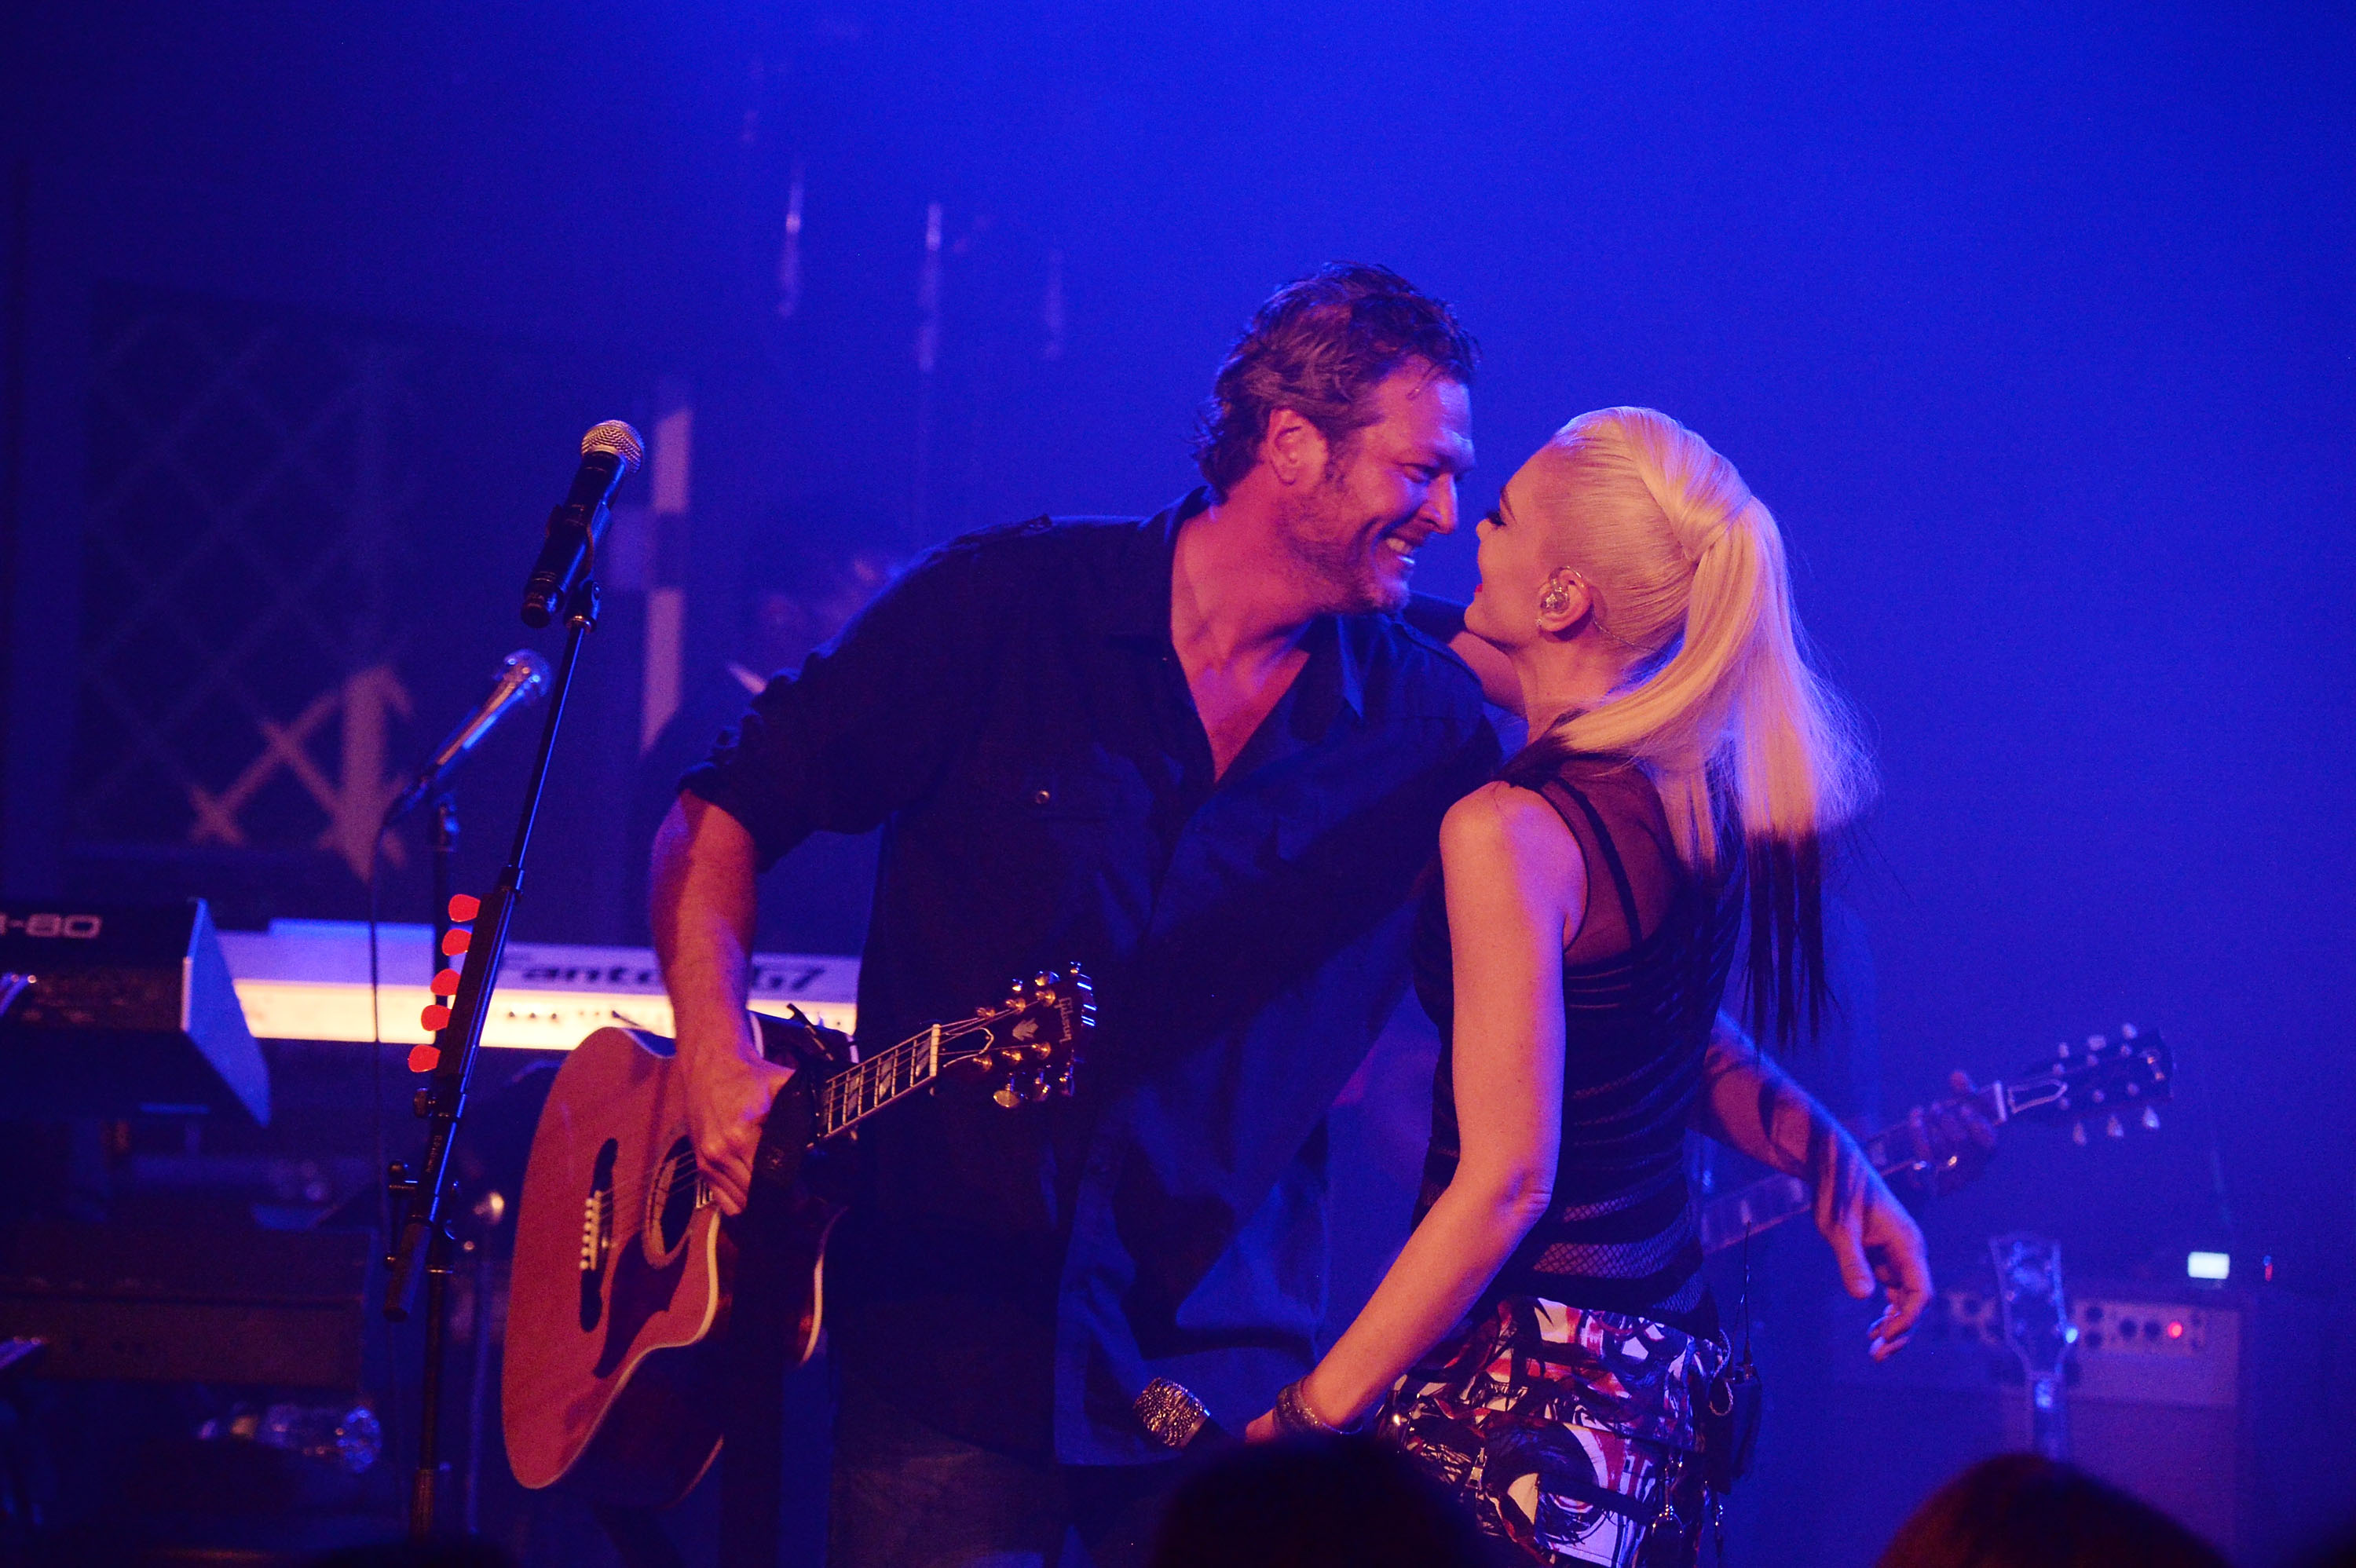 Gwen Stefani joined boyfriend Blake Shelton on stage and Periscoped the entire thing